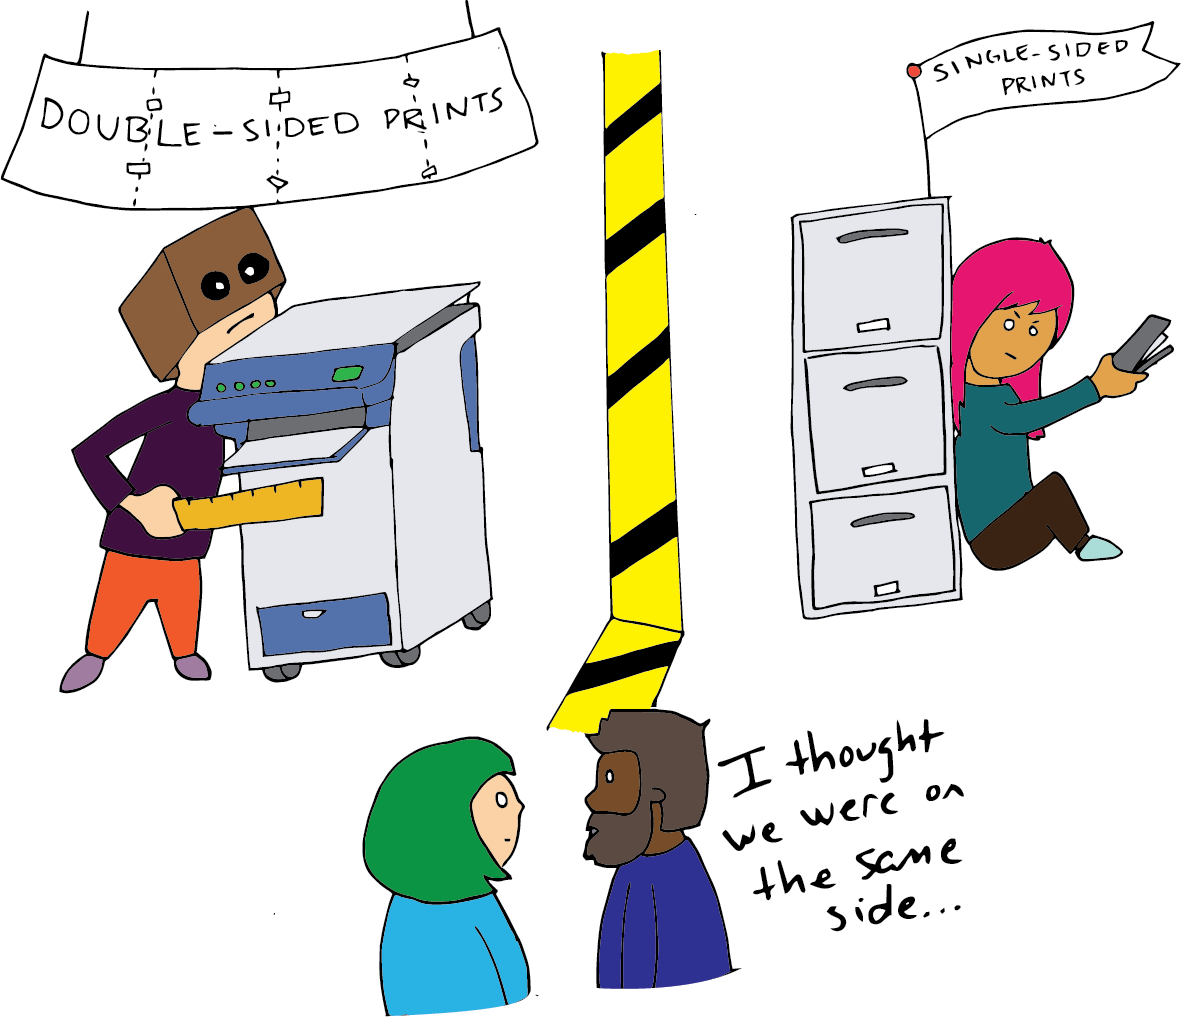 Two coworkers square off over printing single sided or double sided as colleagues look on